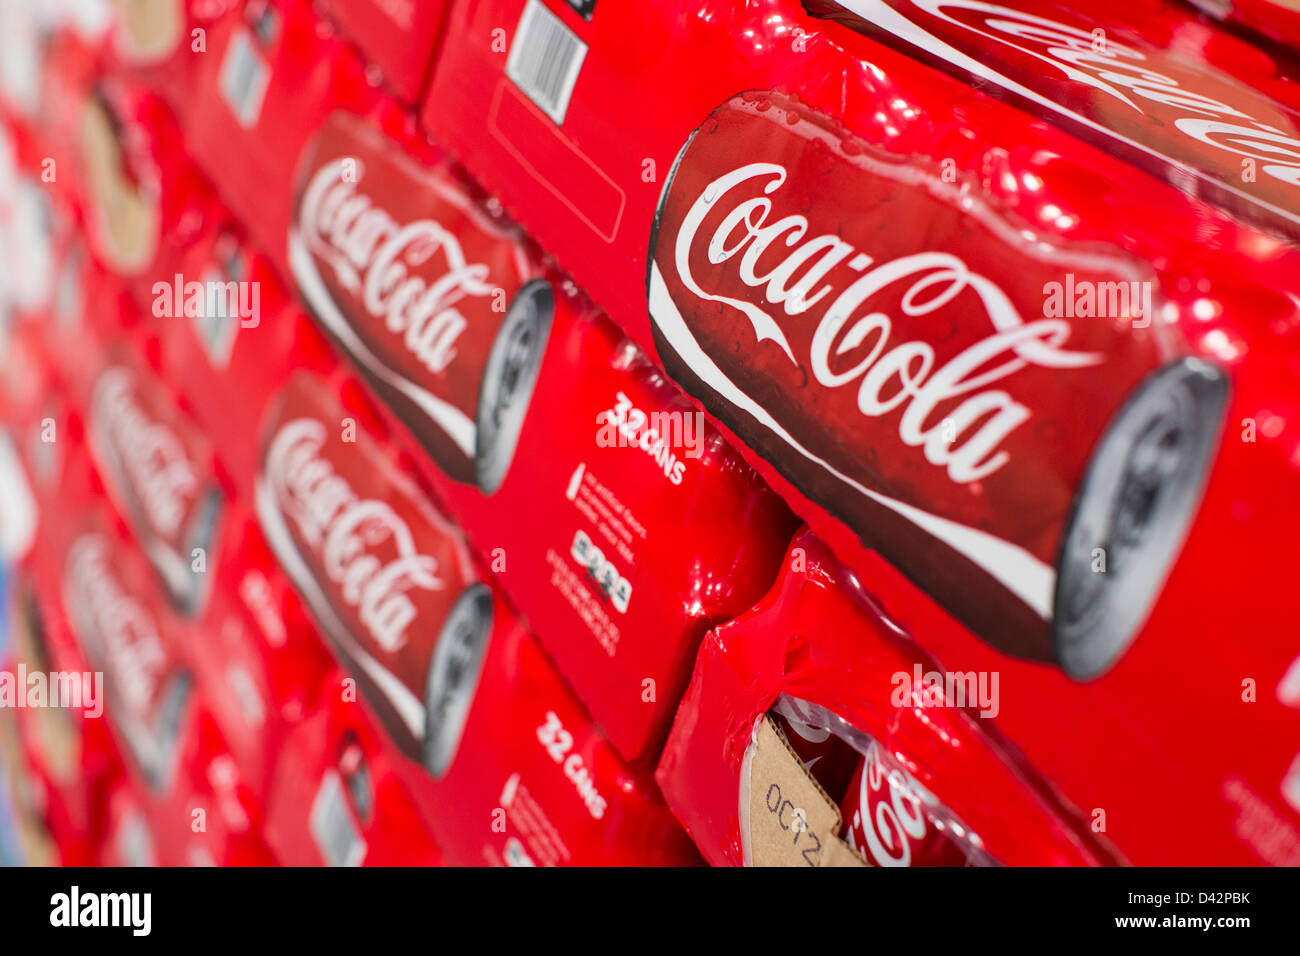 Classic Soft Drinks Stock Photos & Classic Soft Drinks Stock Images